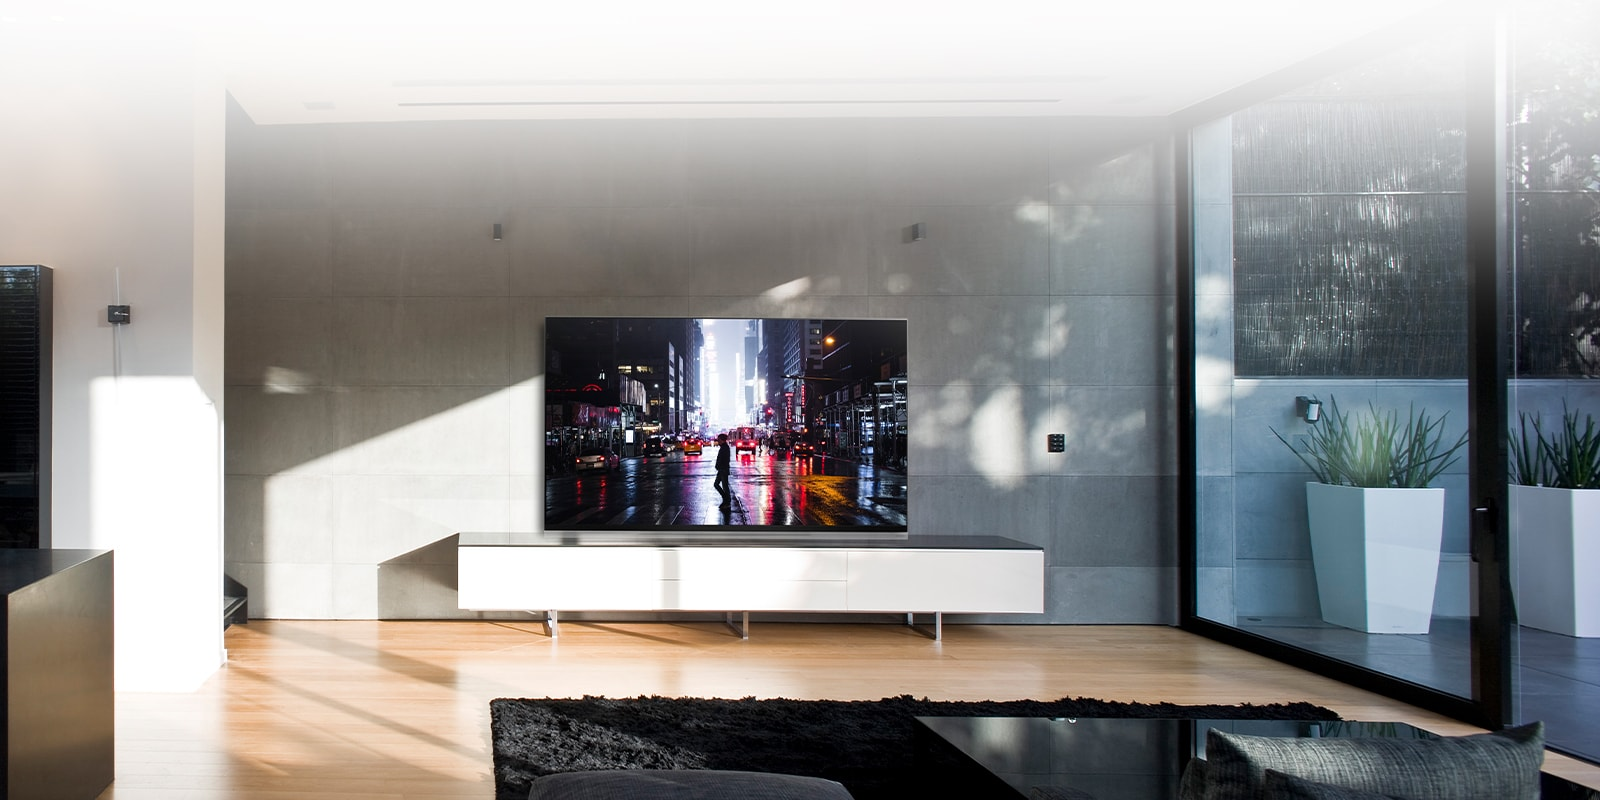 Enjoy High Quality images with LG OLED 4K TVs